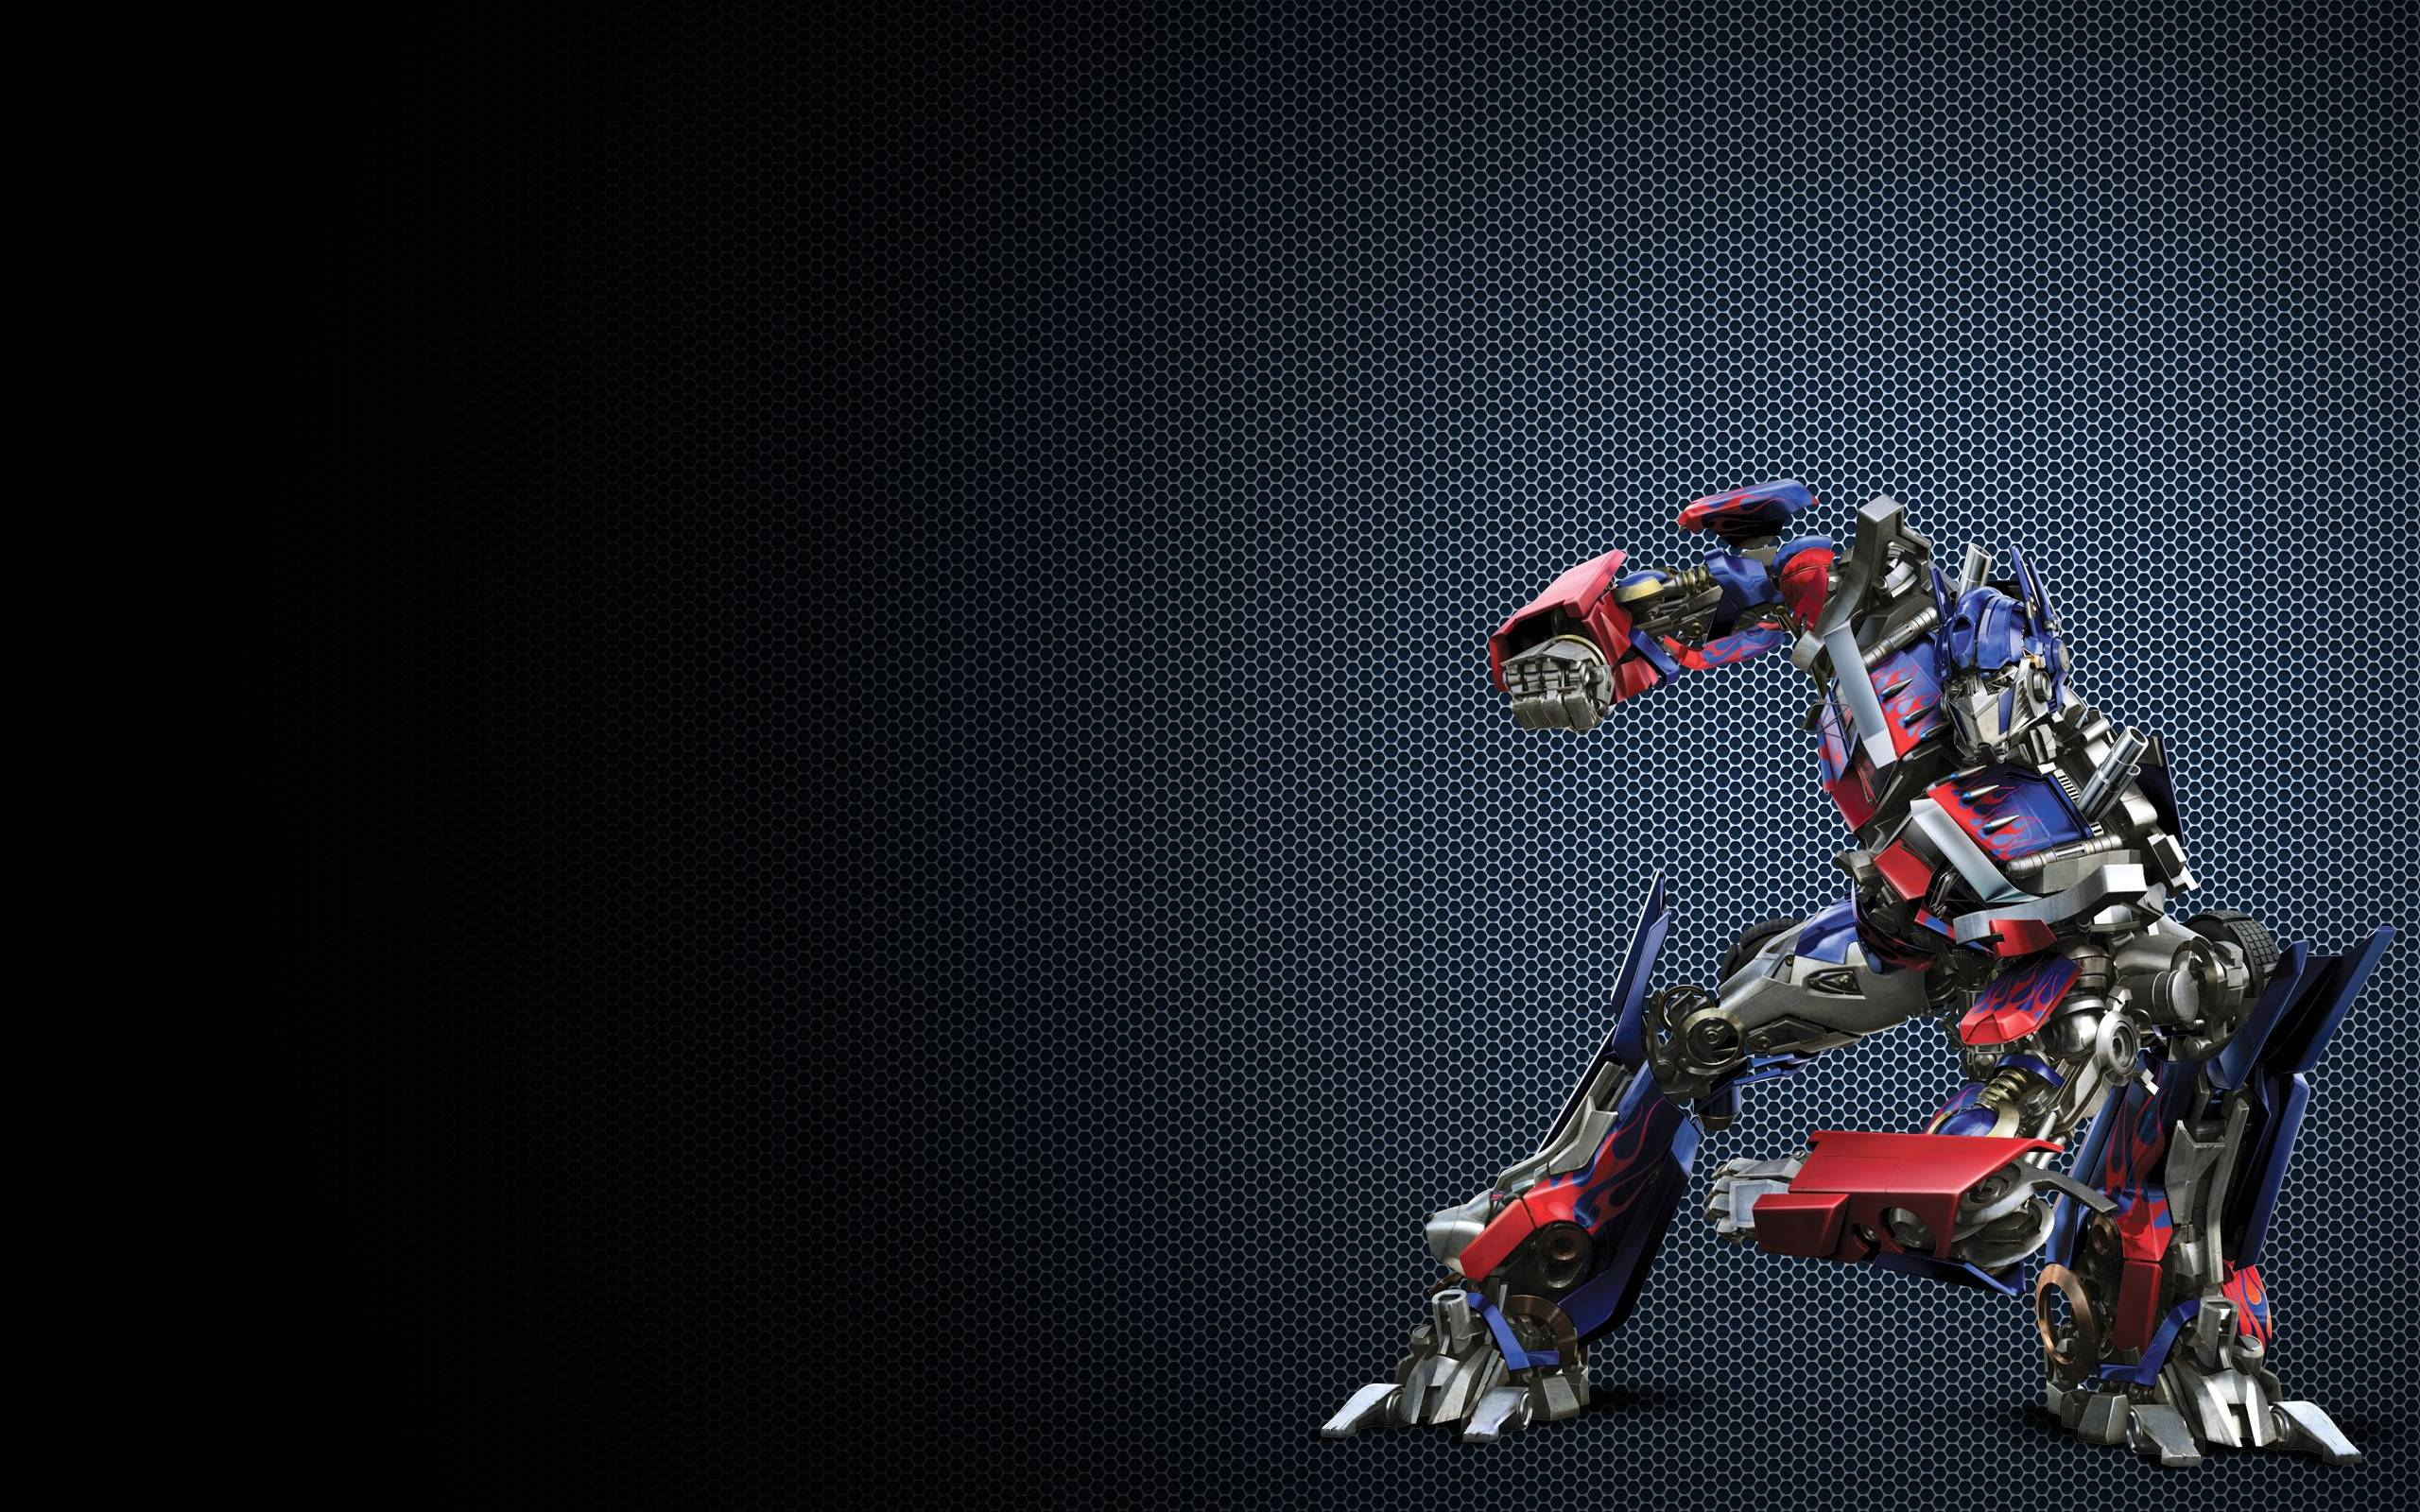 optimus prime wallpaper download - photo #31